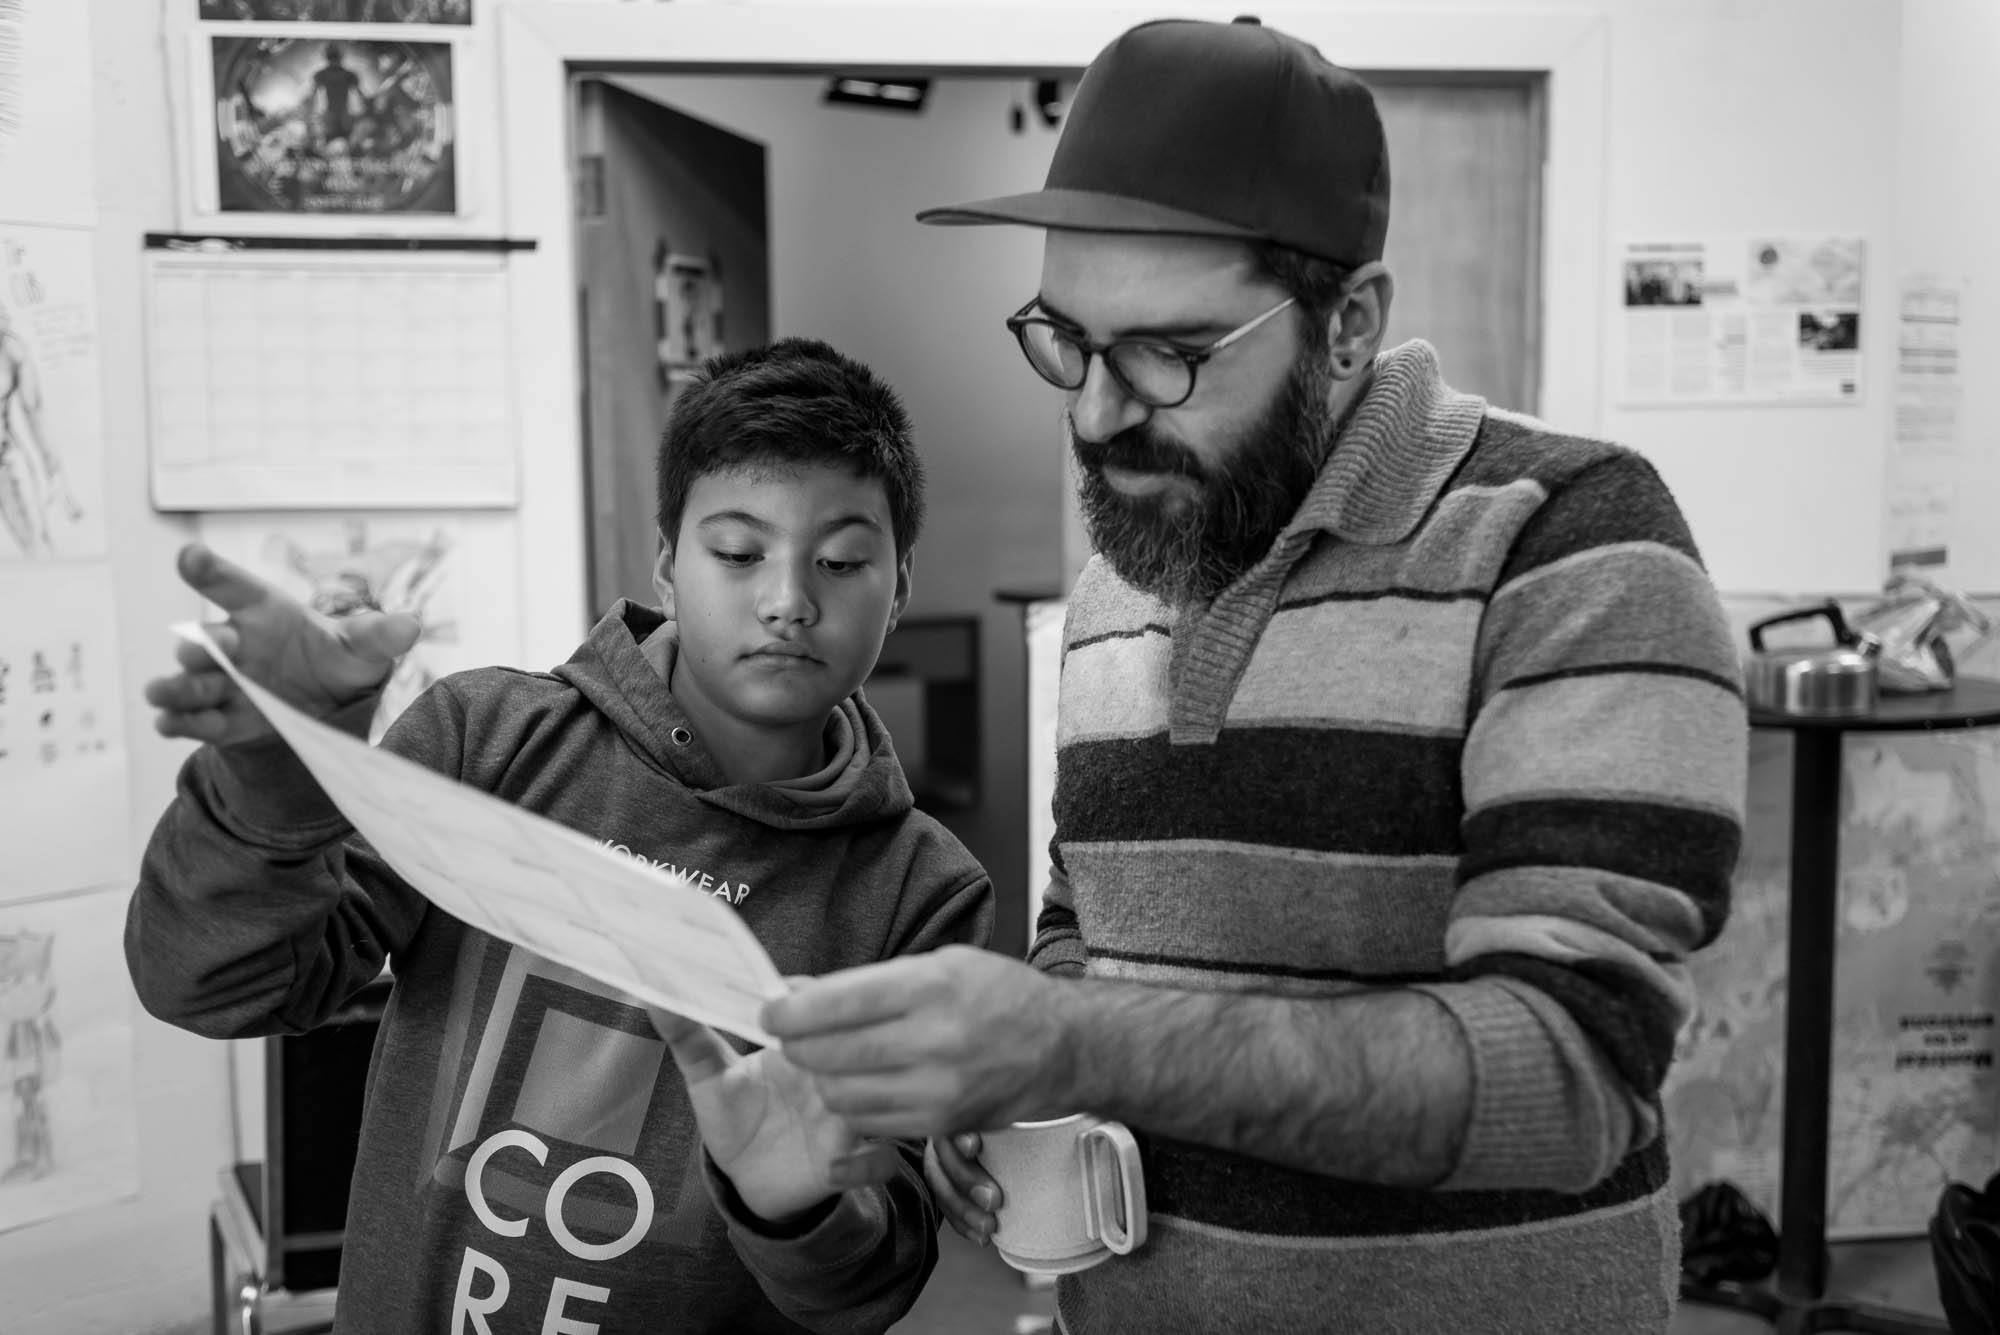 Raphael shows Felipe his revised story board for the animation he is creating.  Facilitator to participant feedback and support is essential to developing story ideas.  In this photo essay I show youth on the autism spectrum engaged in programming at Spectrum Productions.   Spectrum Productions provides an opportunity for youth to gather together - they imagine, story board, write scripts, draw and create video while interacting with each other and with staff, something that is not always an easy task.